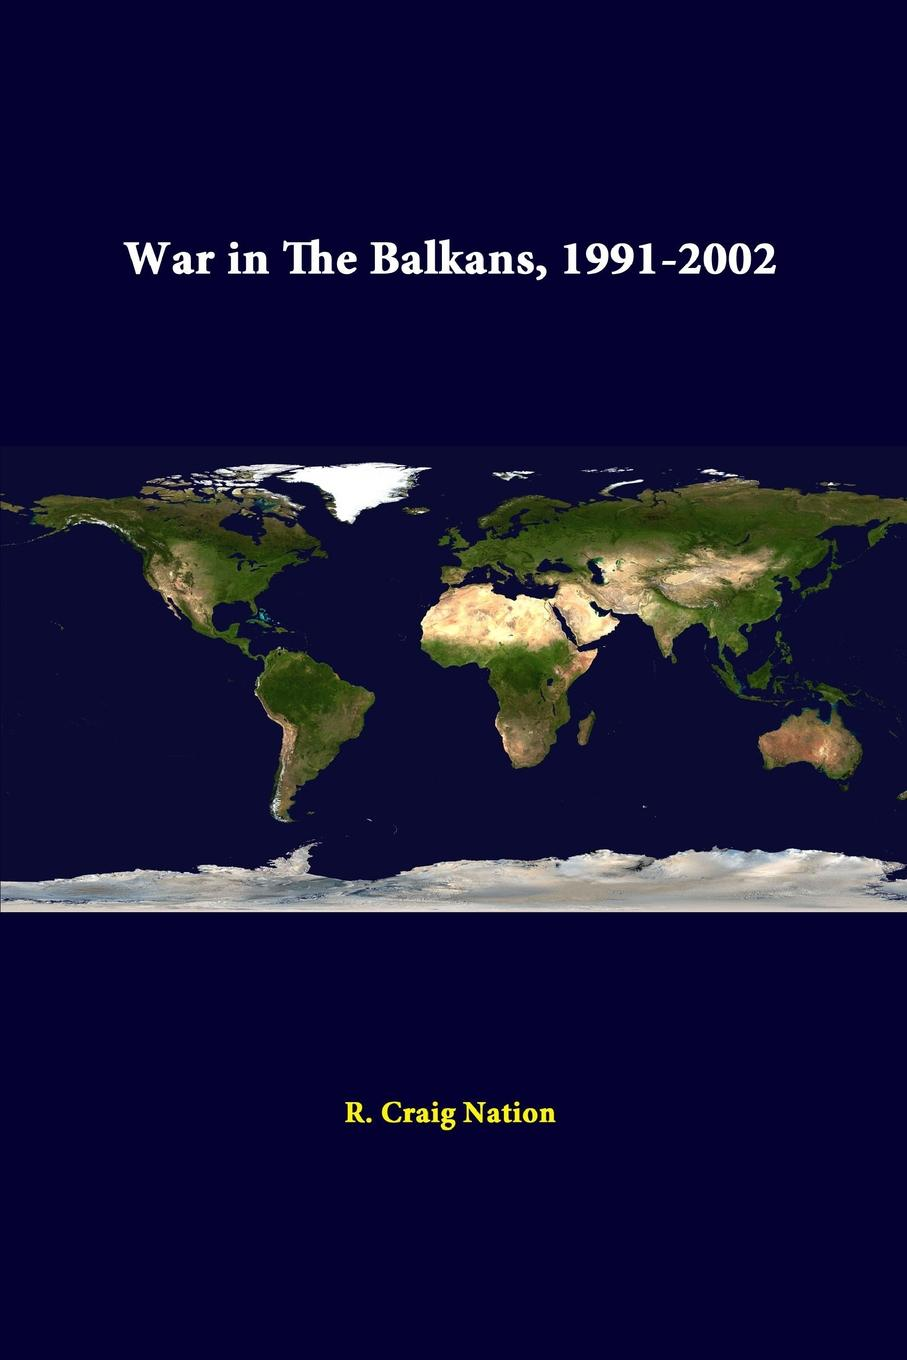 R. Craig Nation, Strategic Studies Institute War in the Balkans, 1991-2002 p r kalidhass conflict of norms in a fragmented international legal system a critical analysis